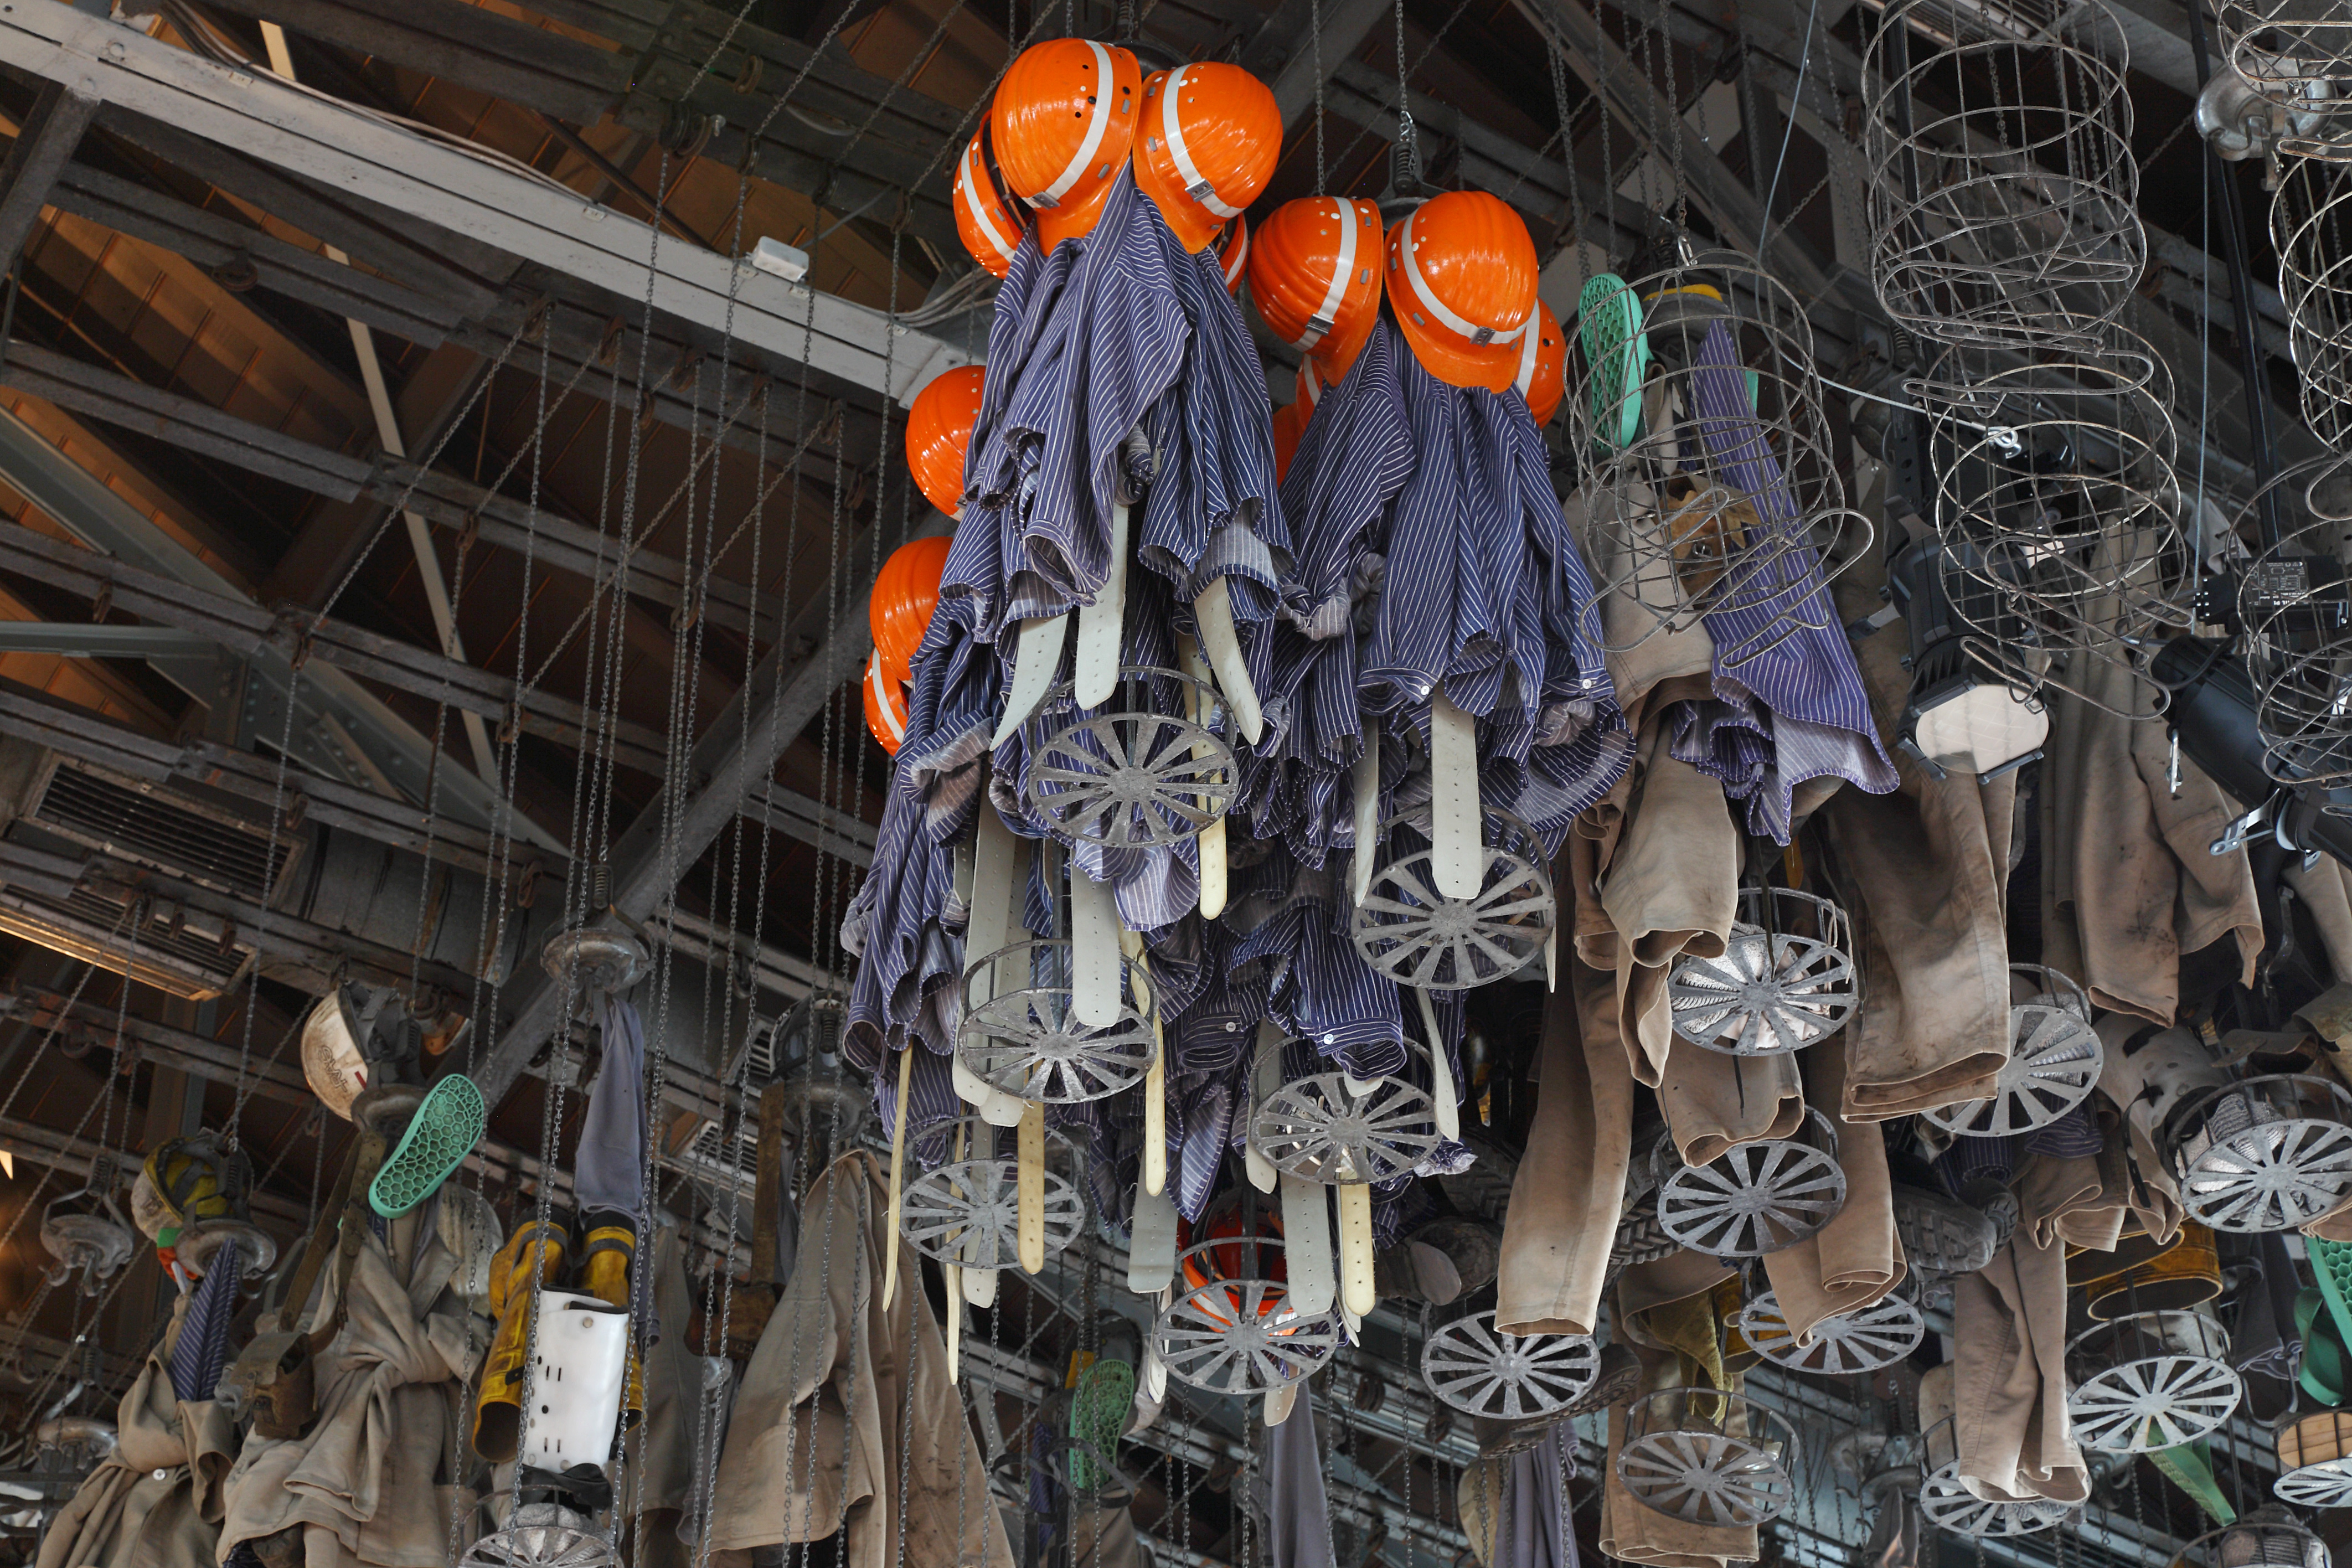 Miners equipment hanging from the ceiling of a room in Zollern Colliery.